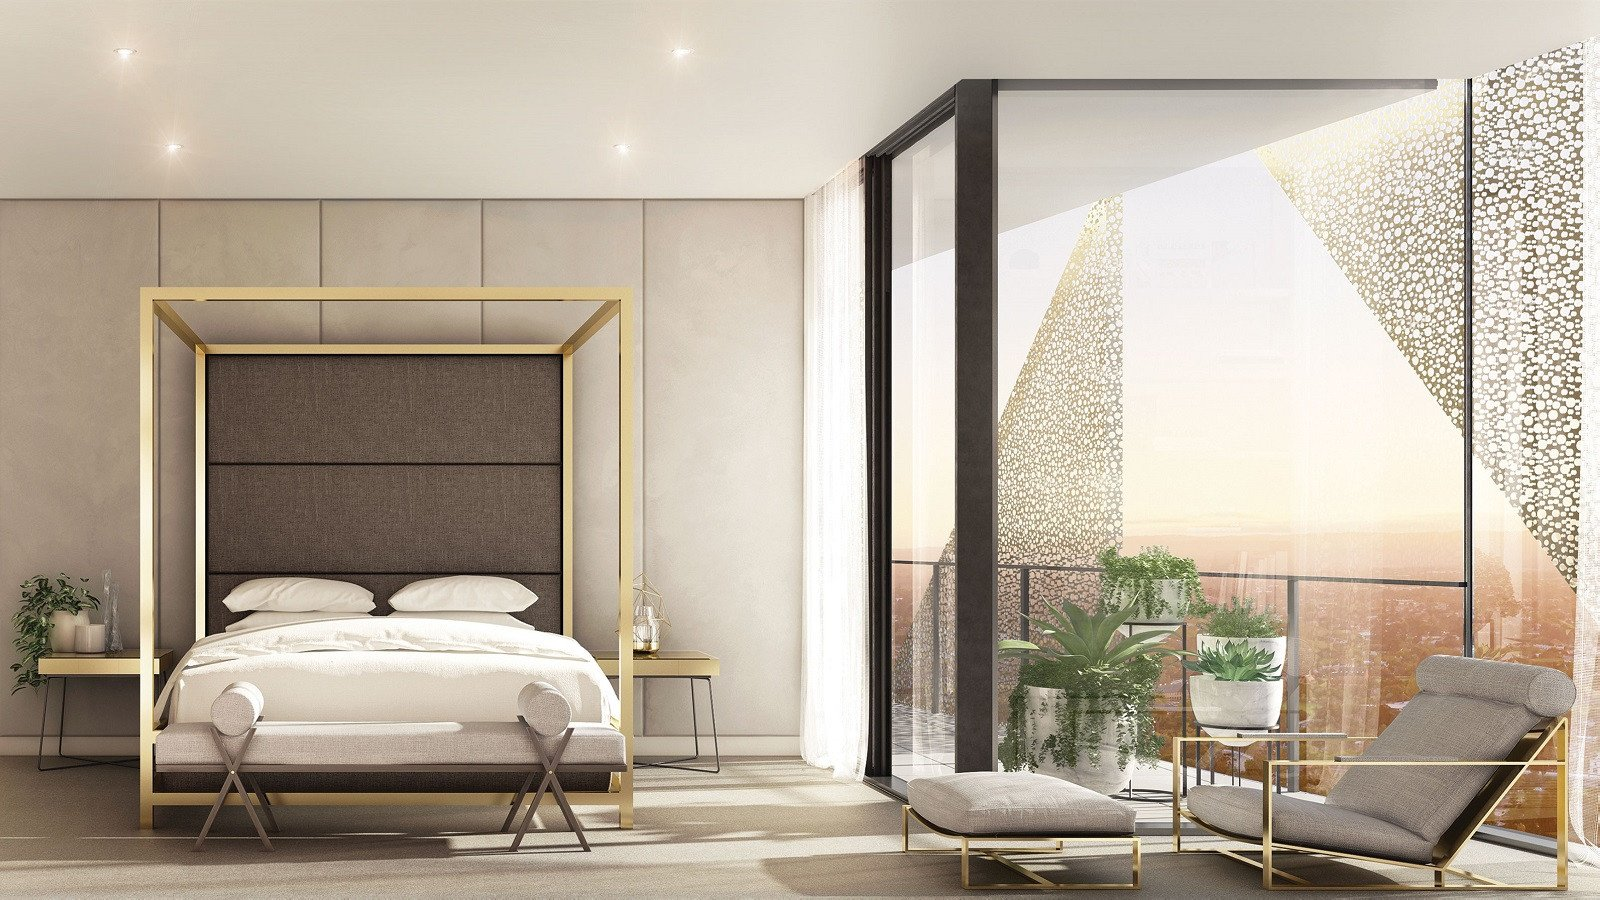 Realm Apartments-image-16